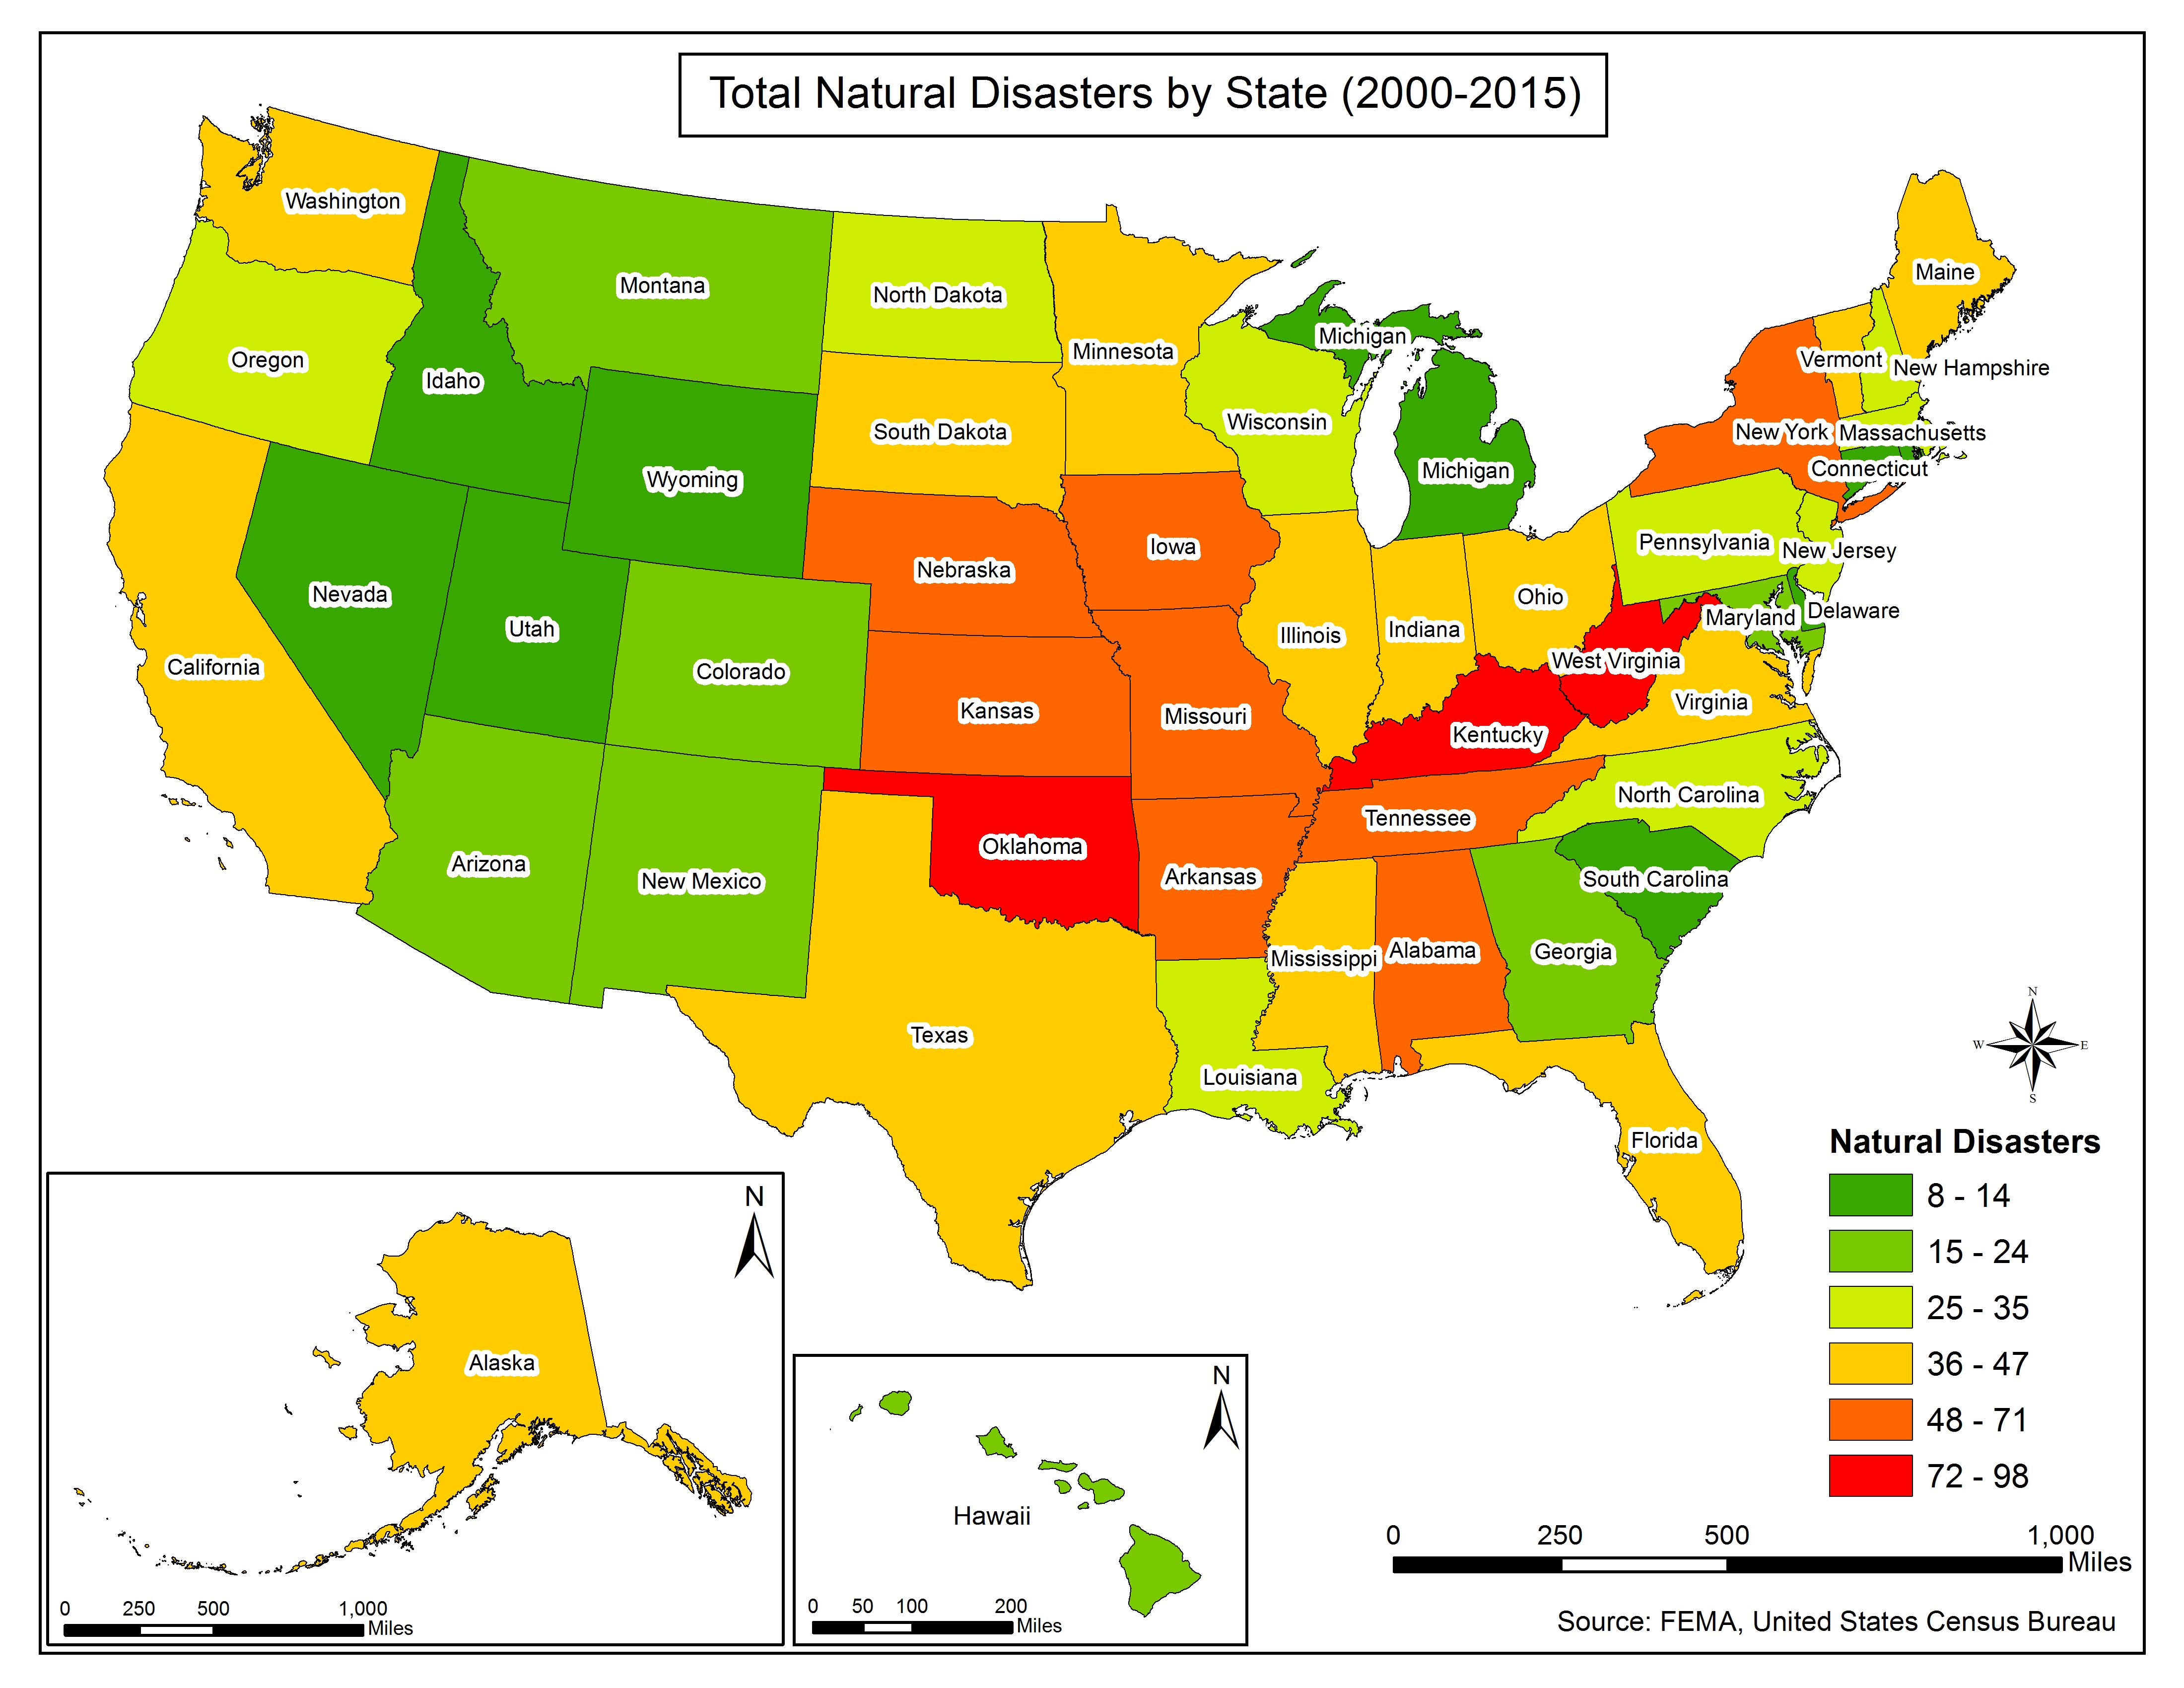 map 1 total natural disasters by state 2000 2015 typeright